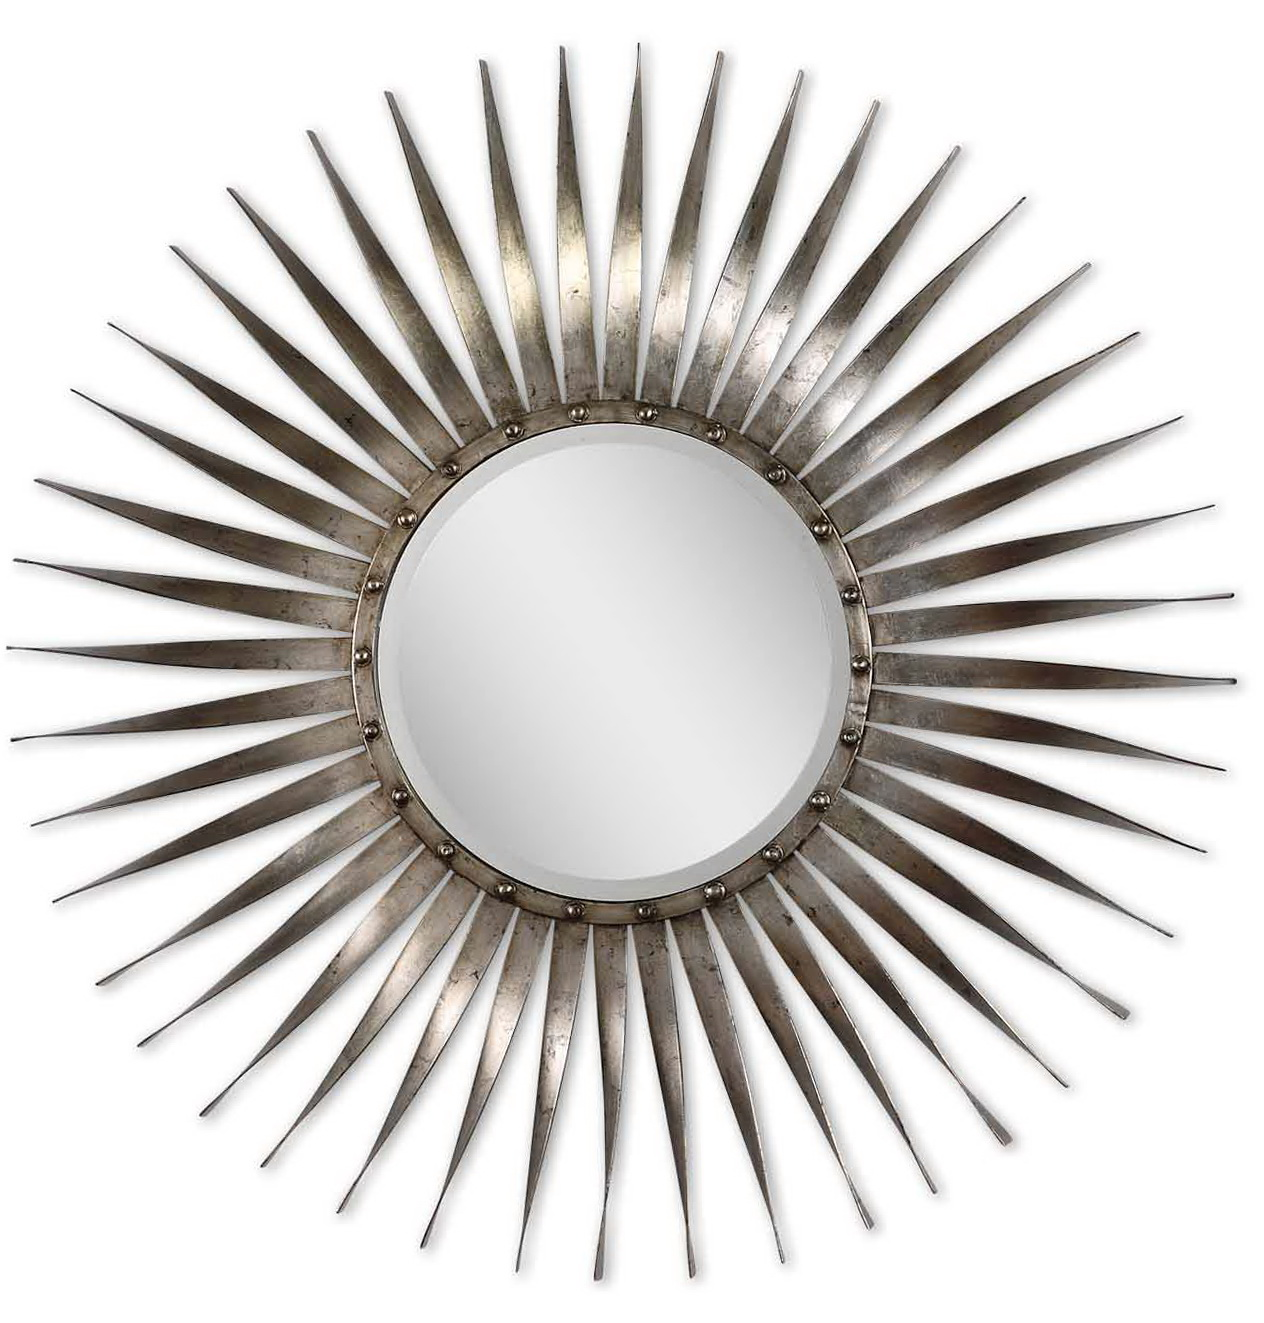 Silver Sunburst Mirror Wall Decor